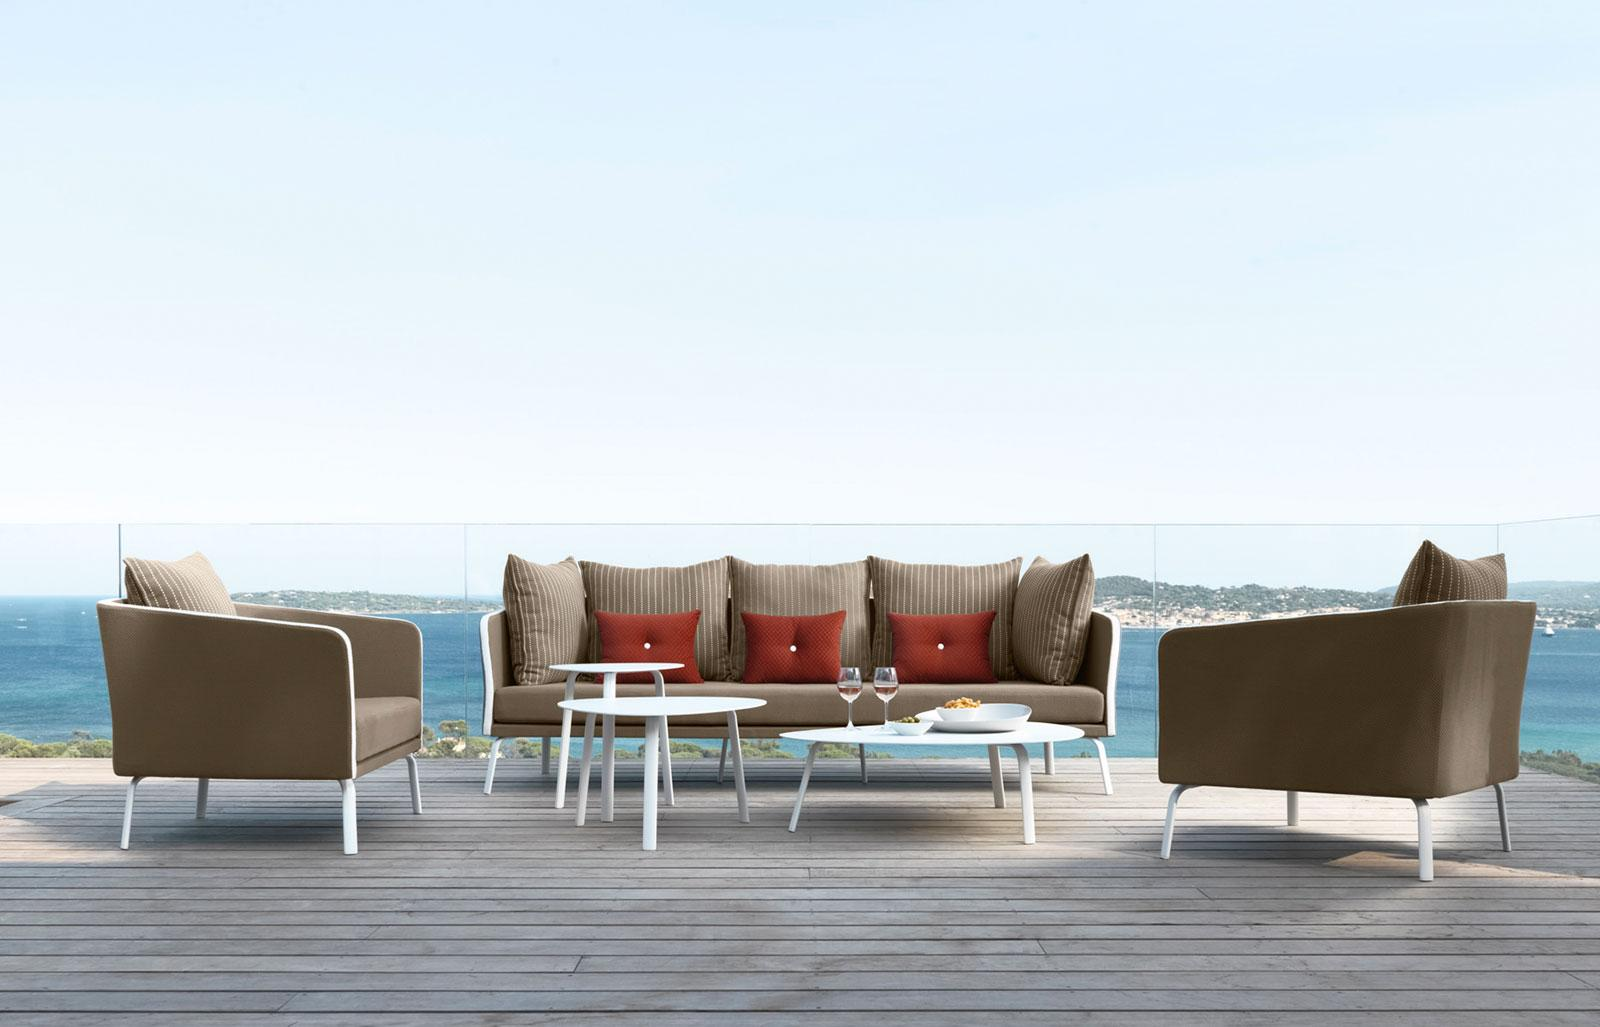 How To Elevate Your Outdoor Design For The Summer With 3 Simple Tips! outdoor design How To Elevate Your Outdoor Design For The Summer With 3 Simple Tips! How To Elevate Your Outdoor Design For The Summer With 3 Simple Tips cov